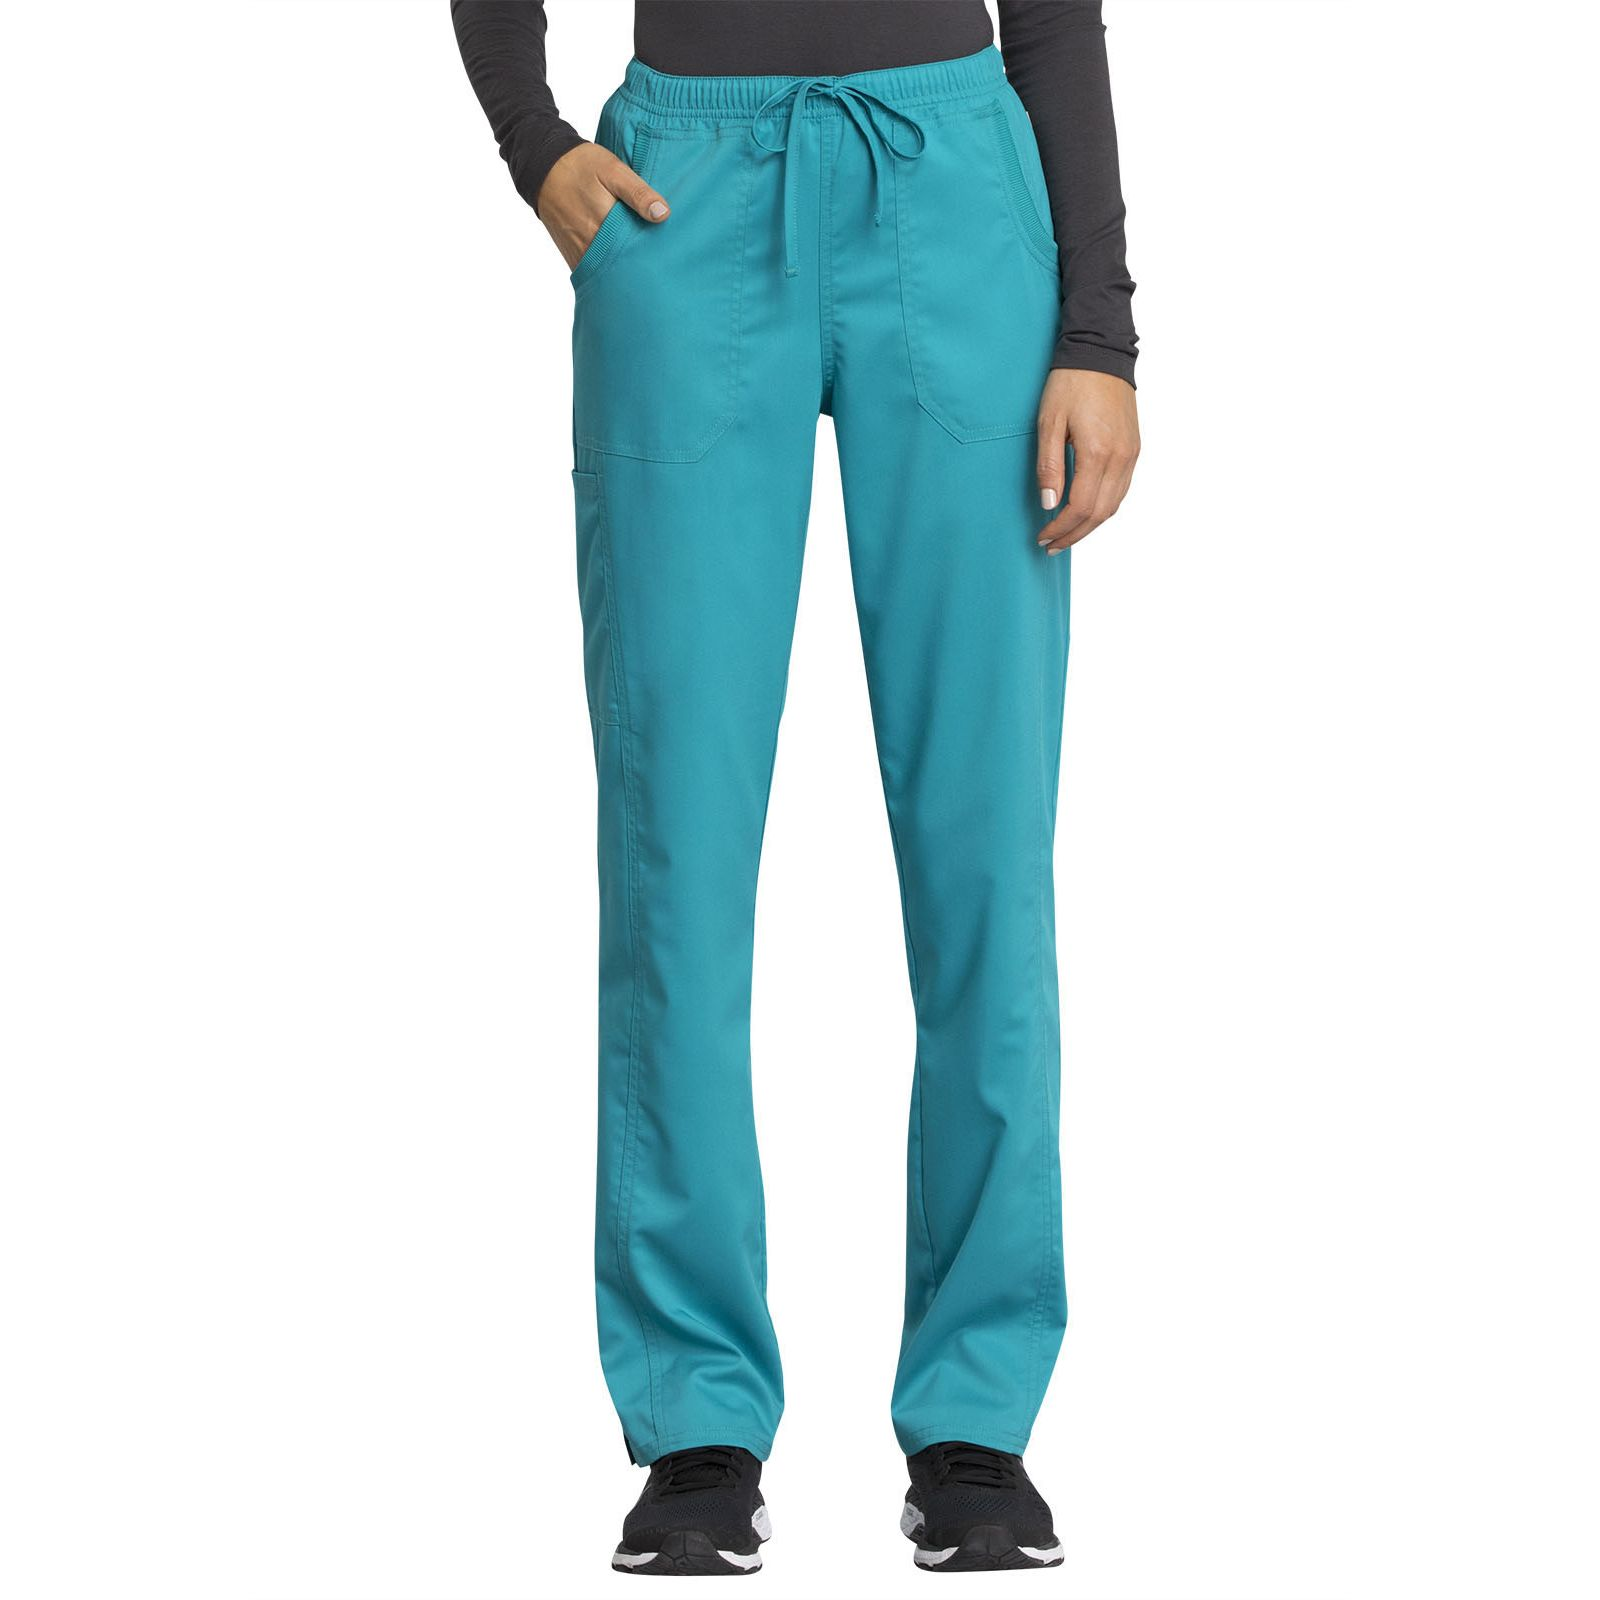 "Pantalon médical femme, Cherokee ""Revolution tech"" (WW235AB) teal blue face"